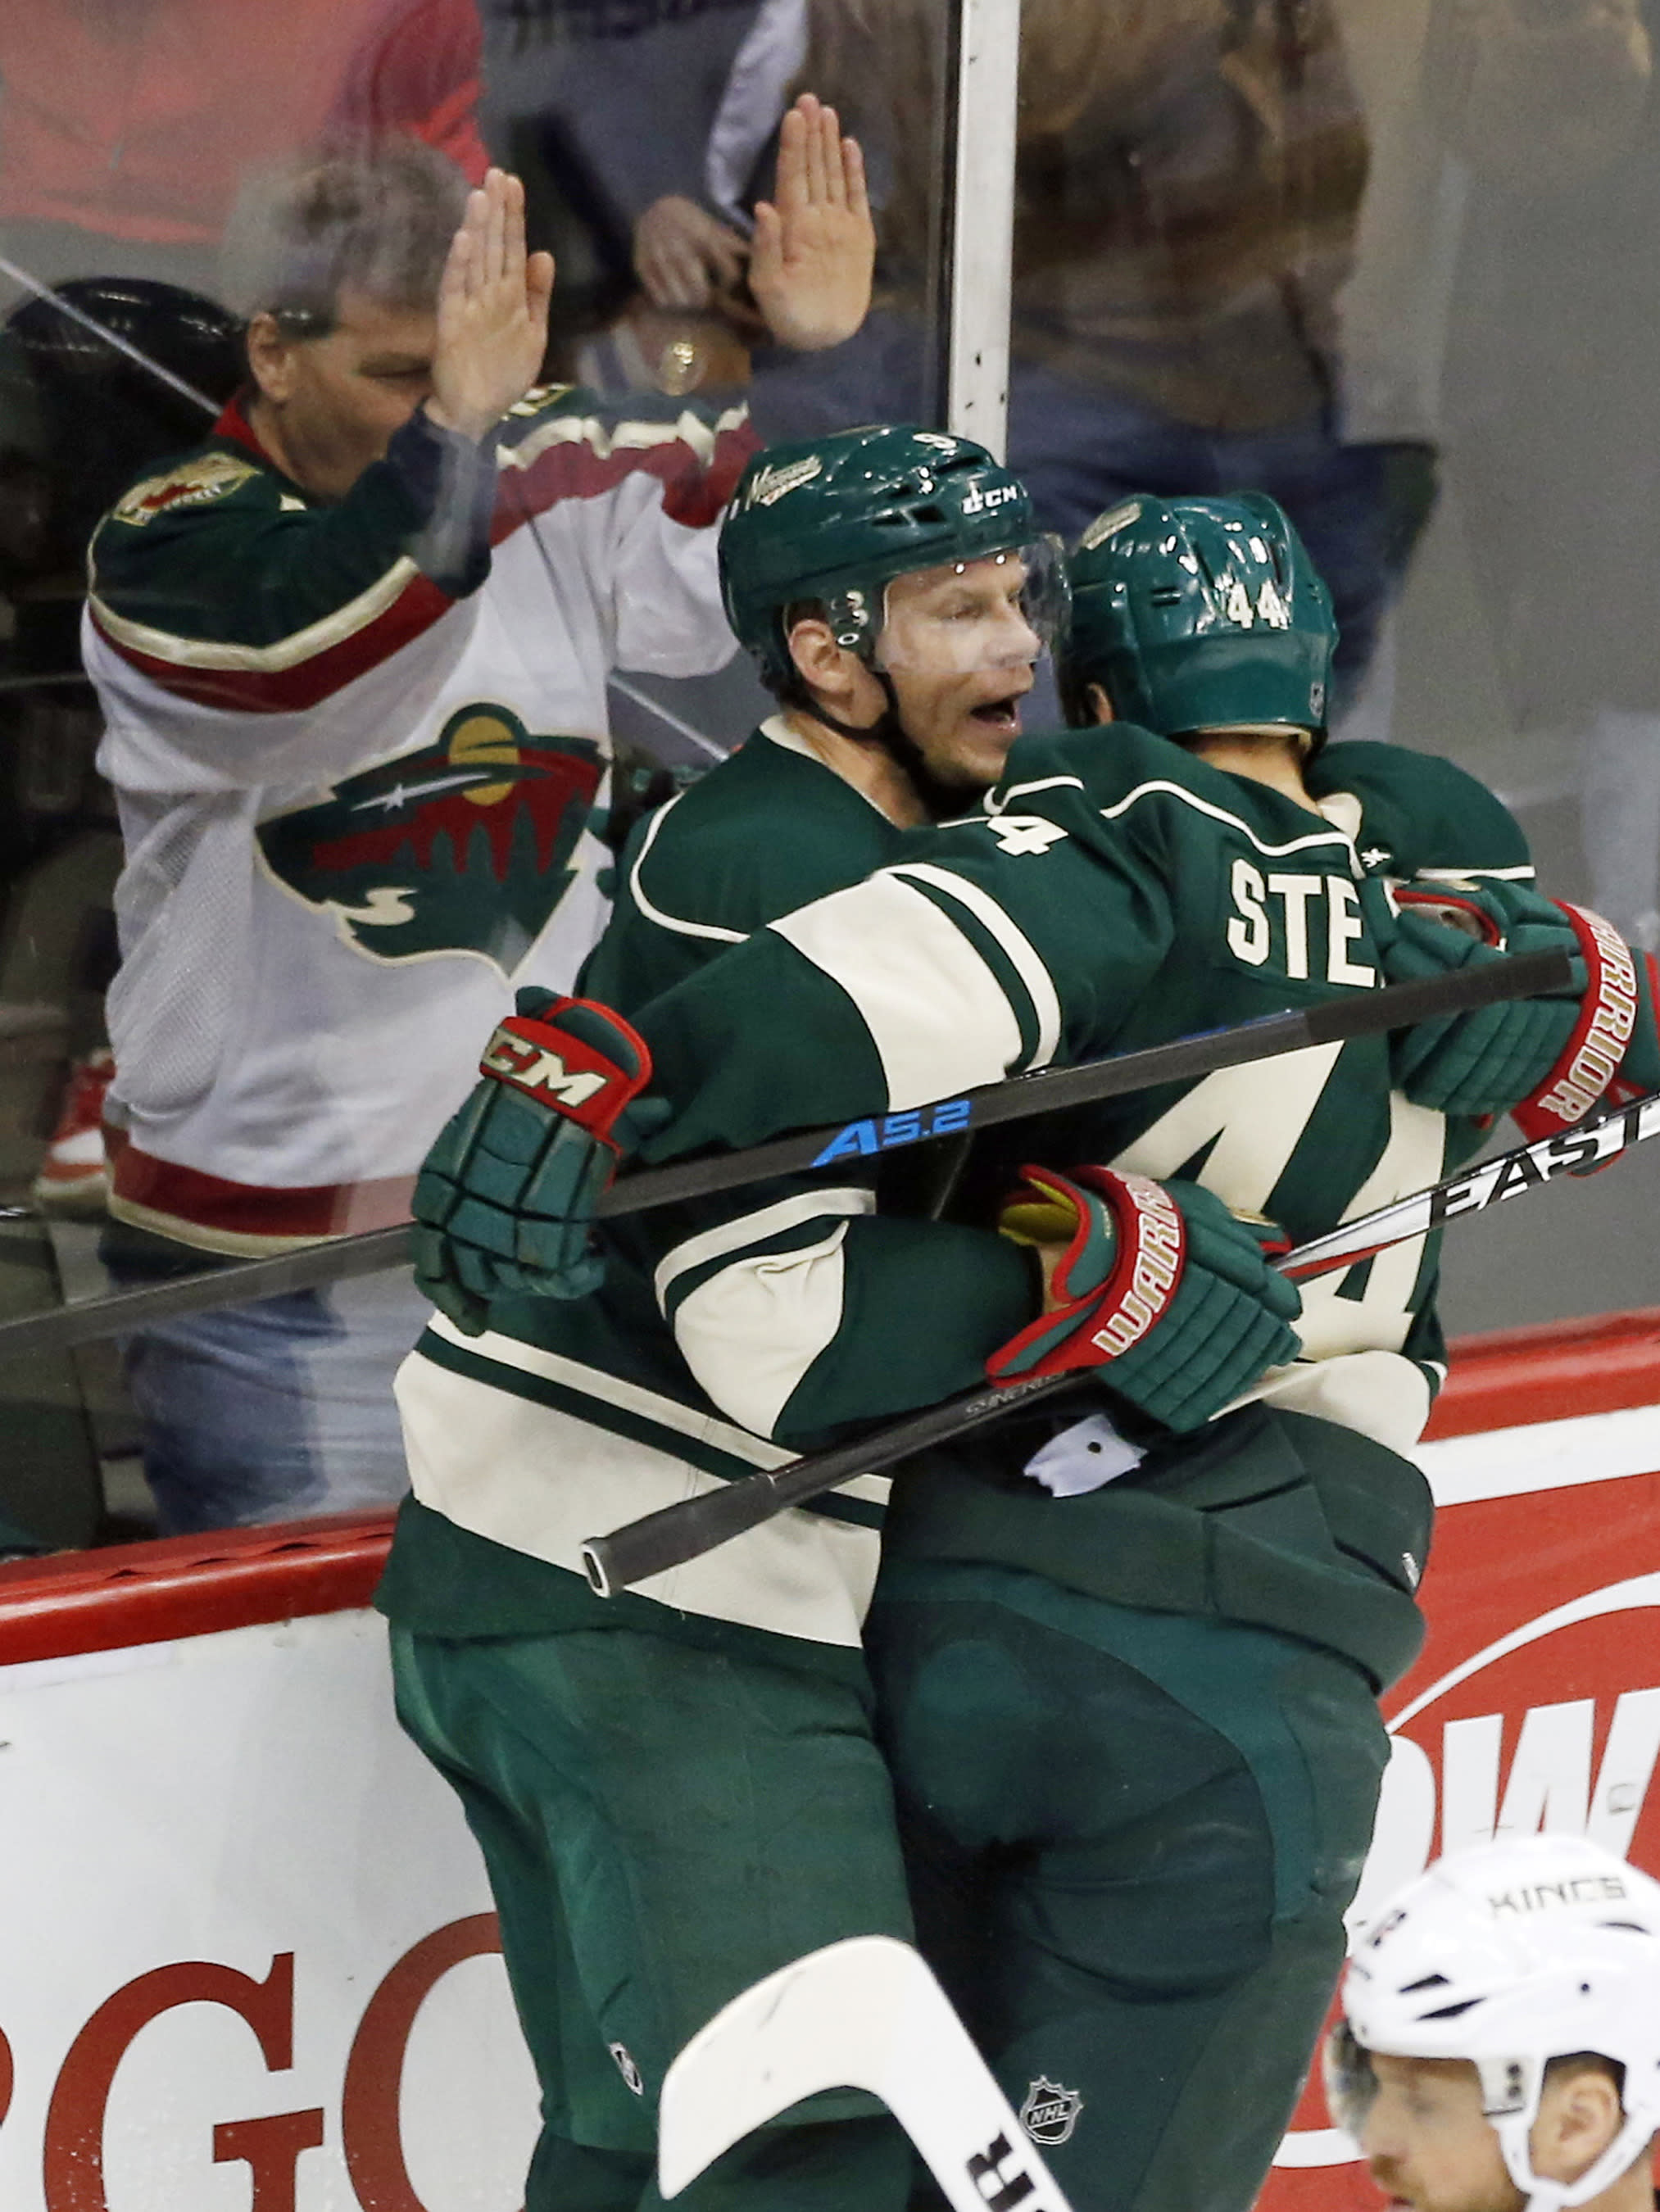 Dubnyk stops 31 shots as Wild beat Kings 4-1